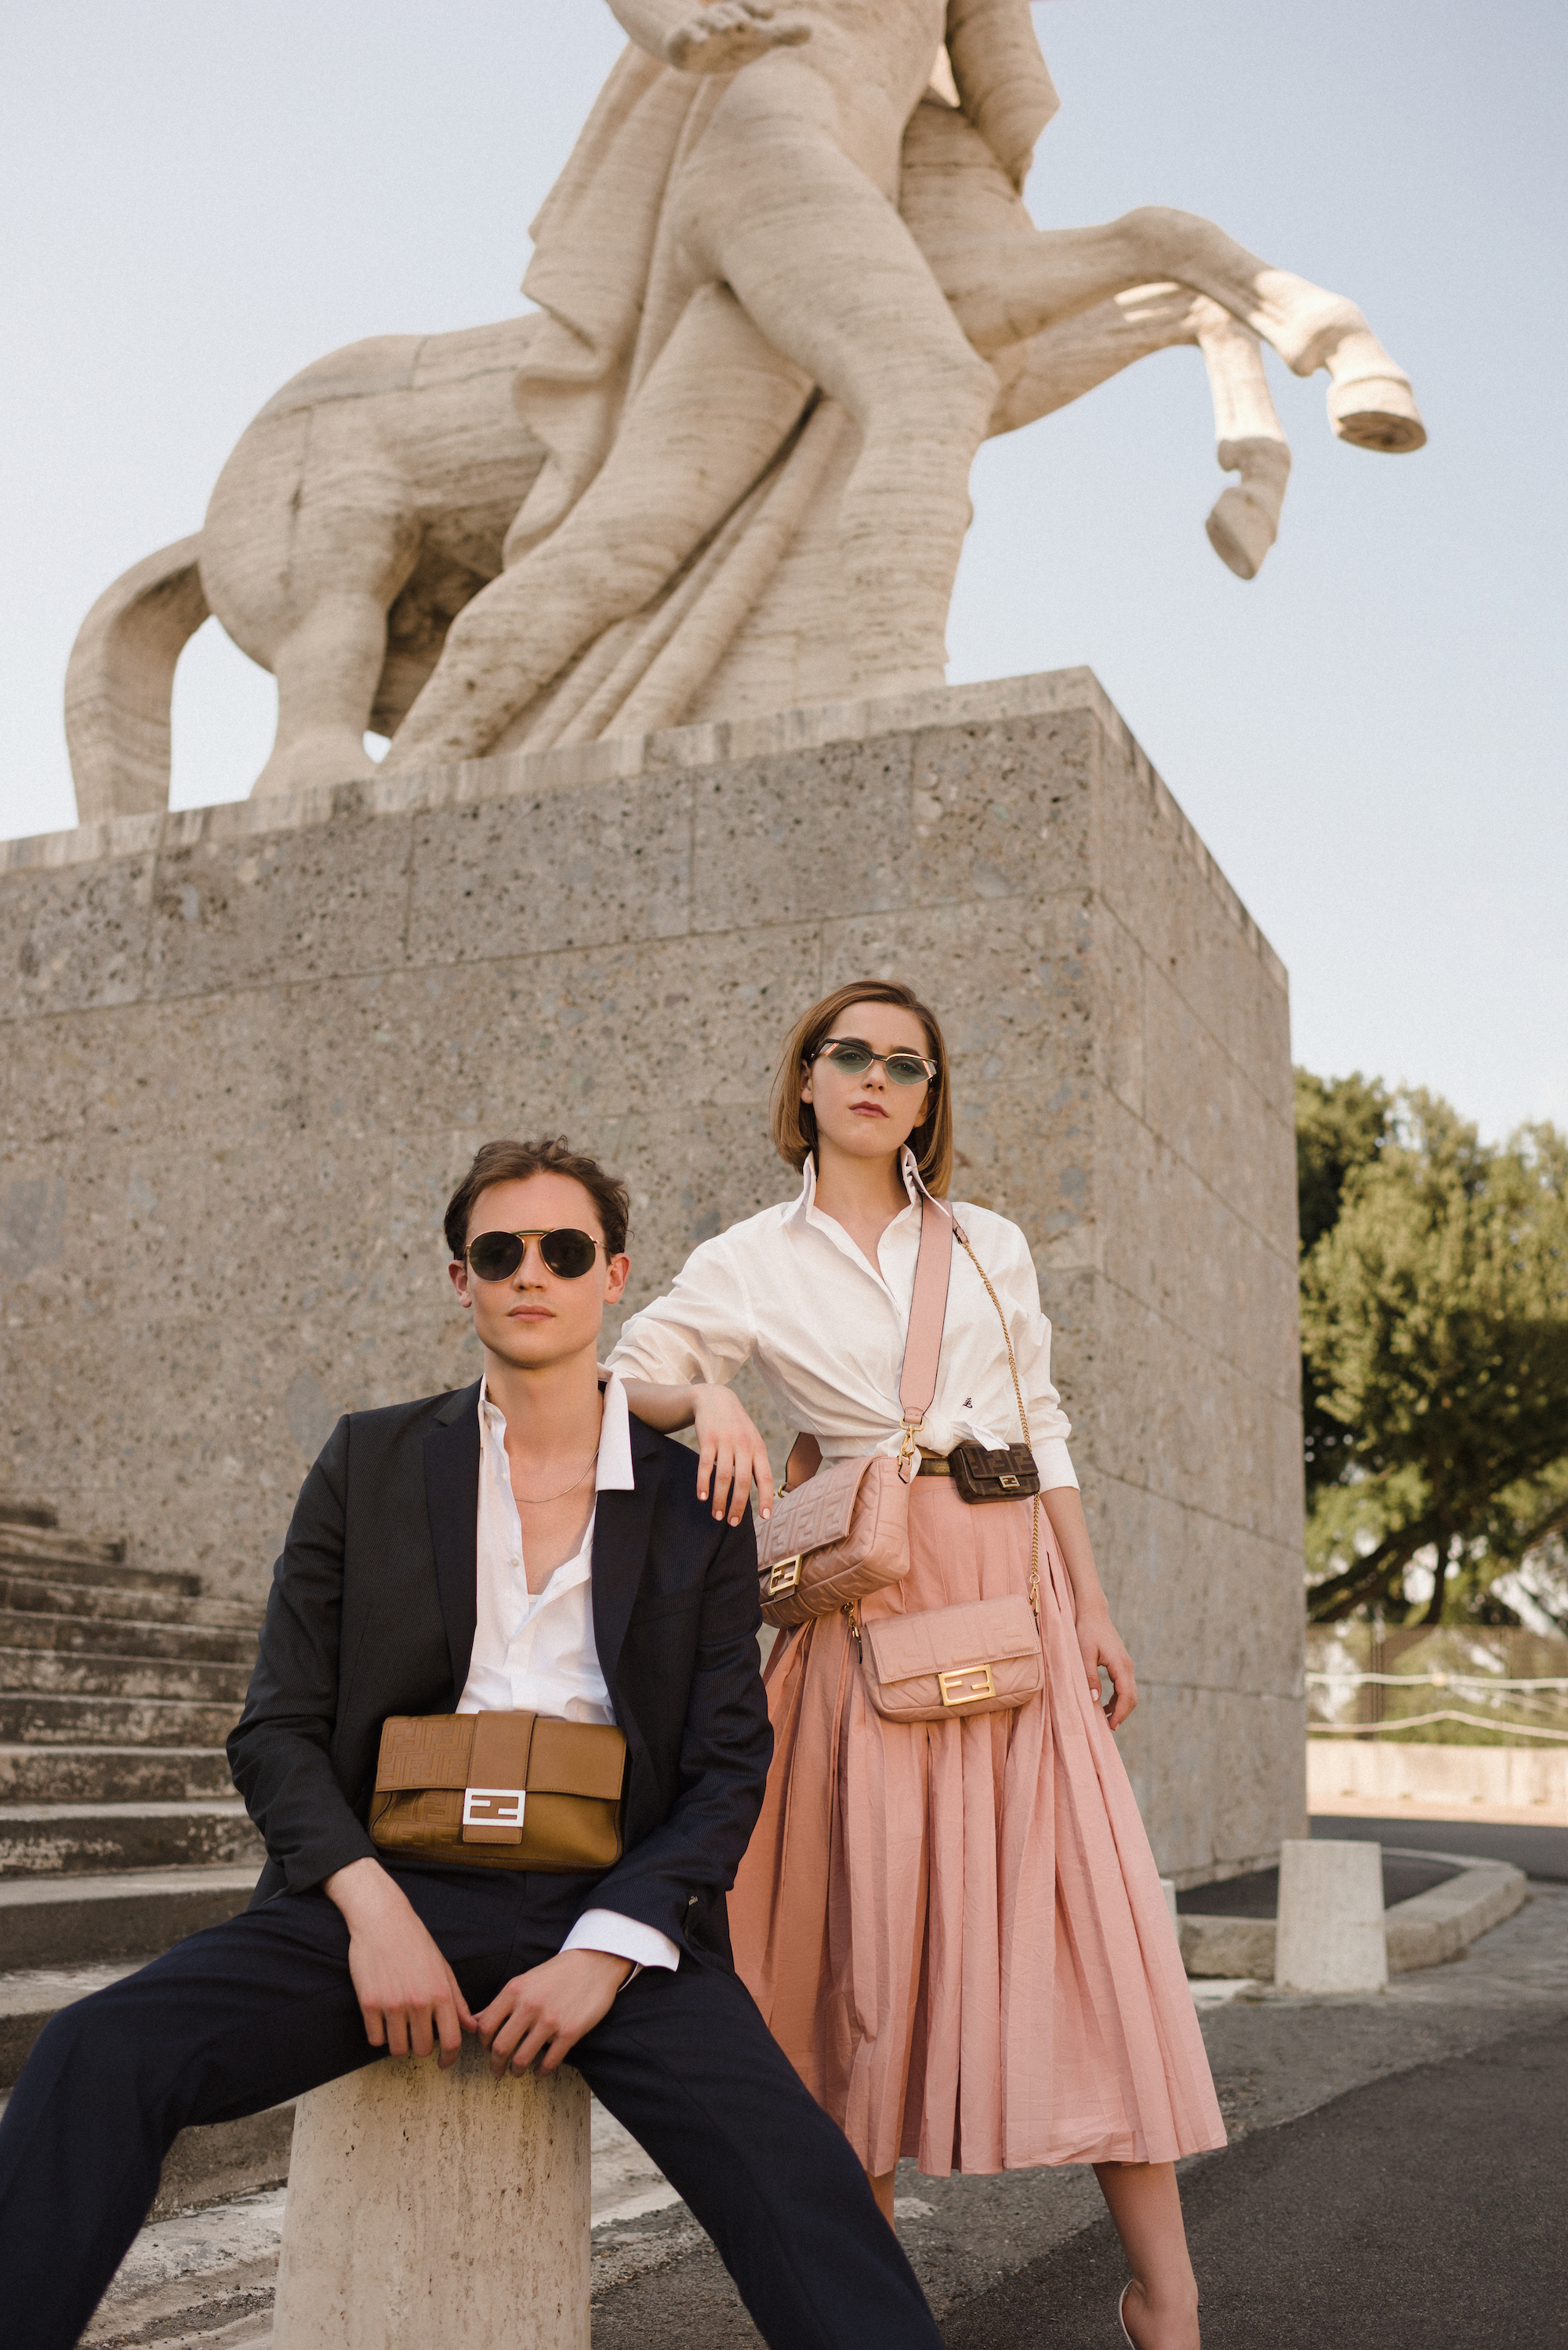 Christian Coppola Fendi Kiernan Shipka Rome Couple Statue